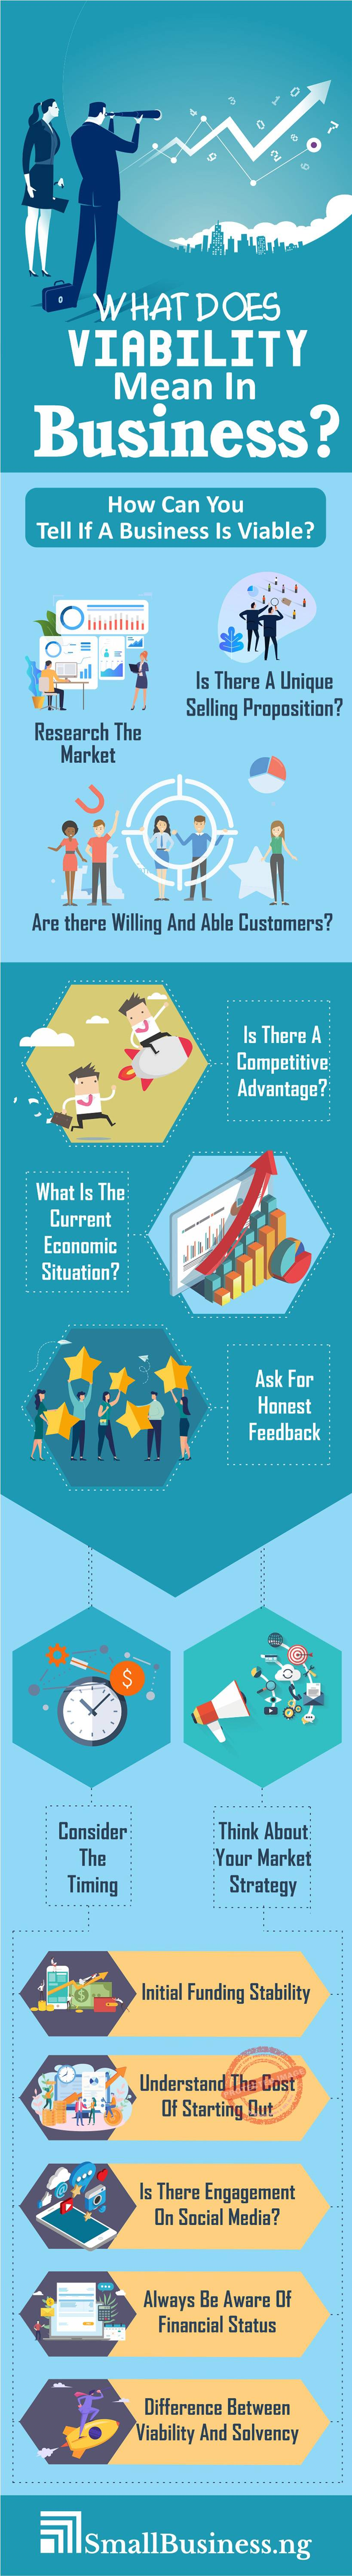 What Does Viability Mean In Business infographic